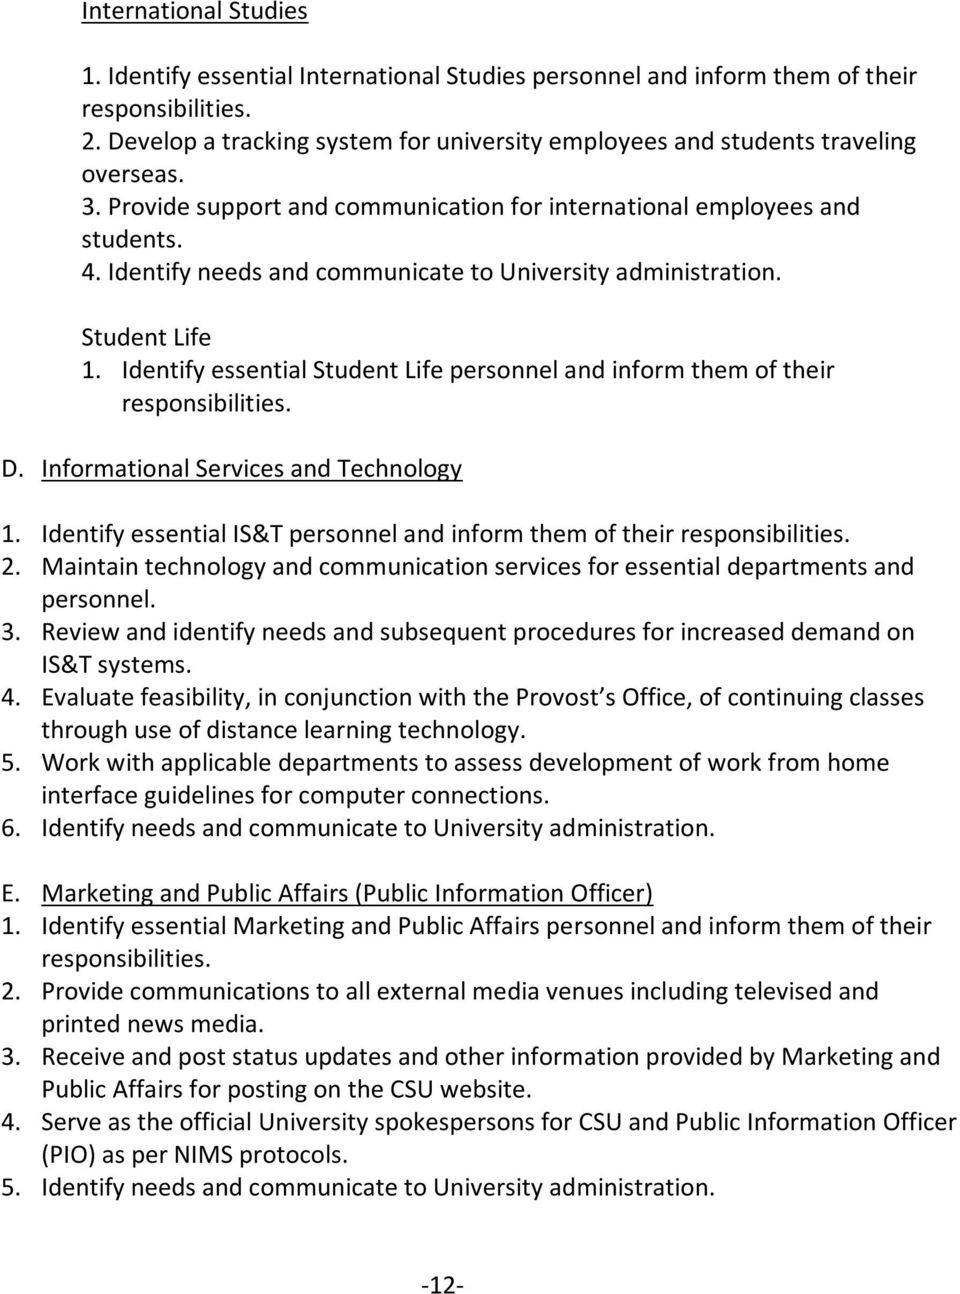 Identify needs and communicate to University administration. Student Life 1. Identify essential Student Life personnel and inform them of their responsibilities. D.